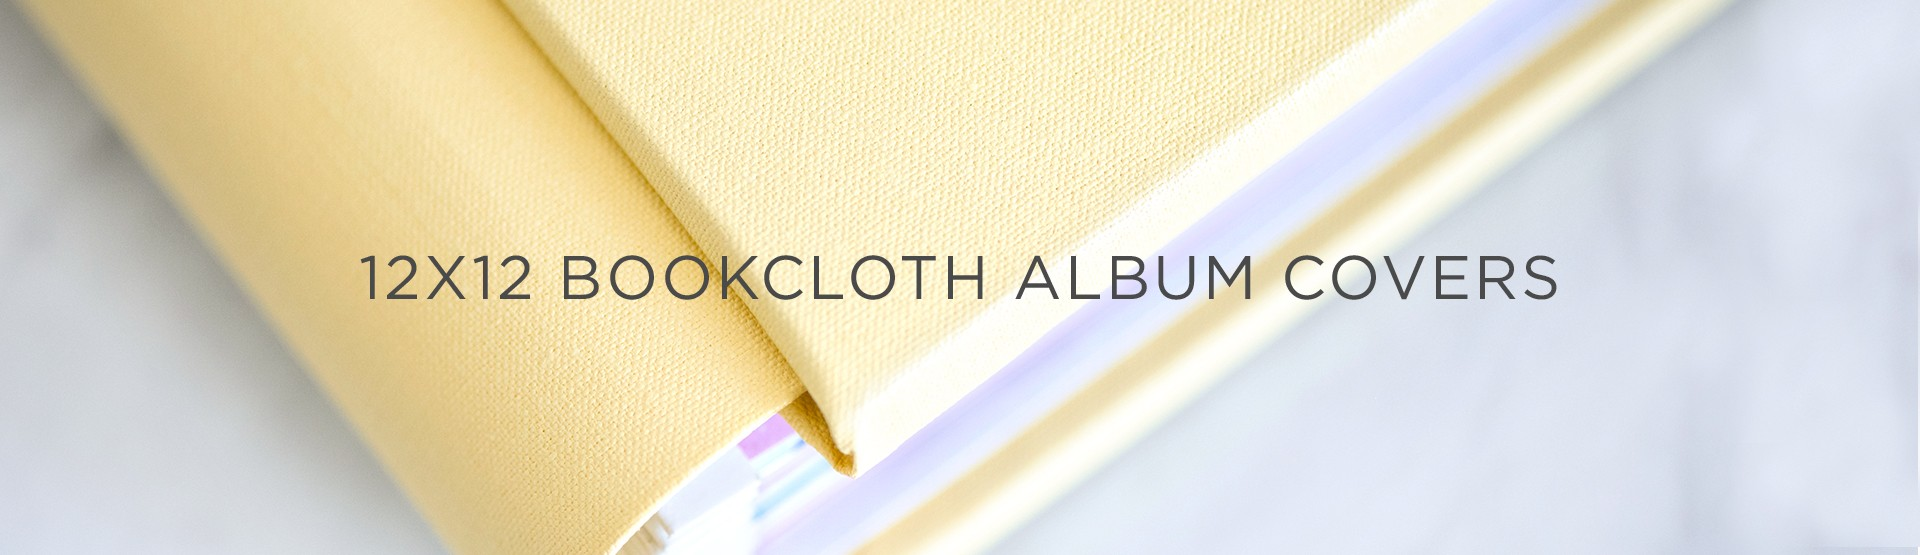 12x12 Bookcloth Album Covers